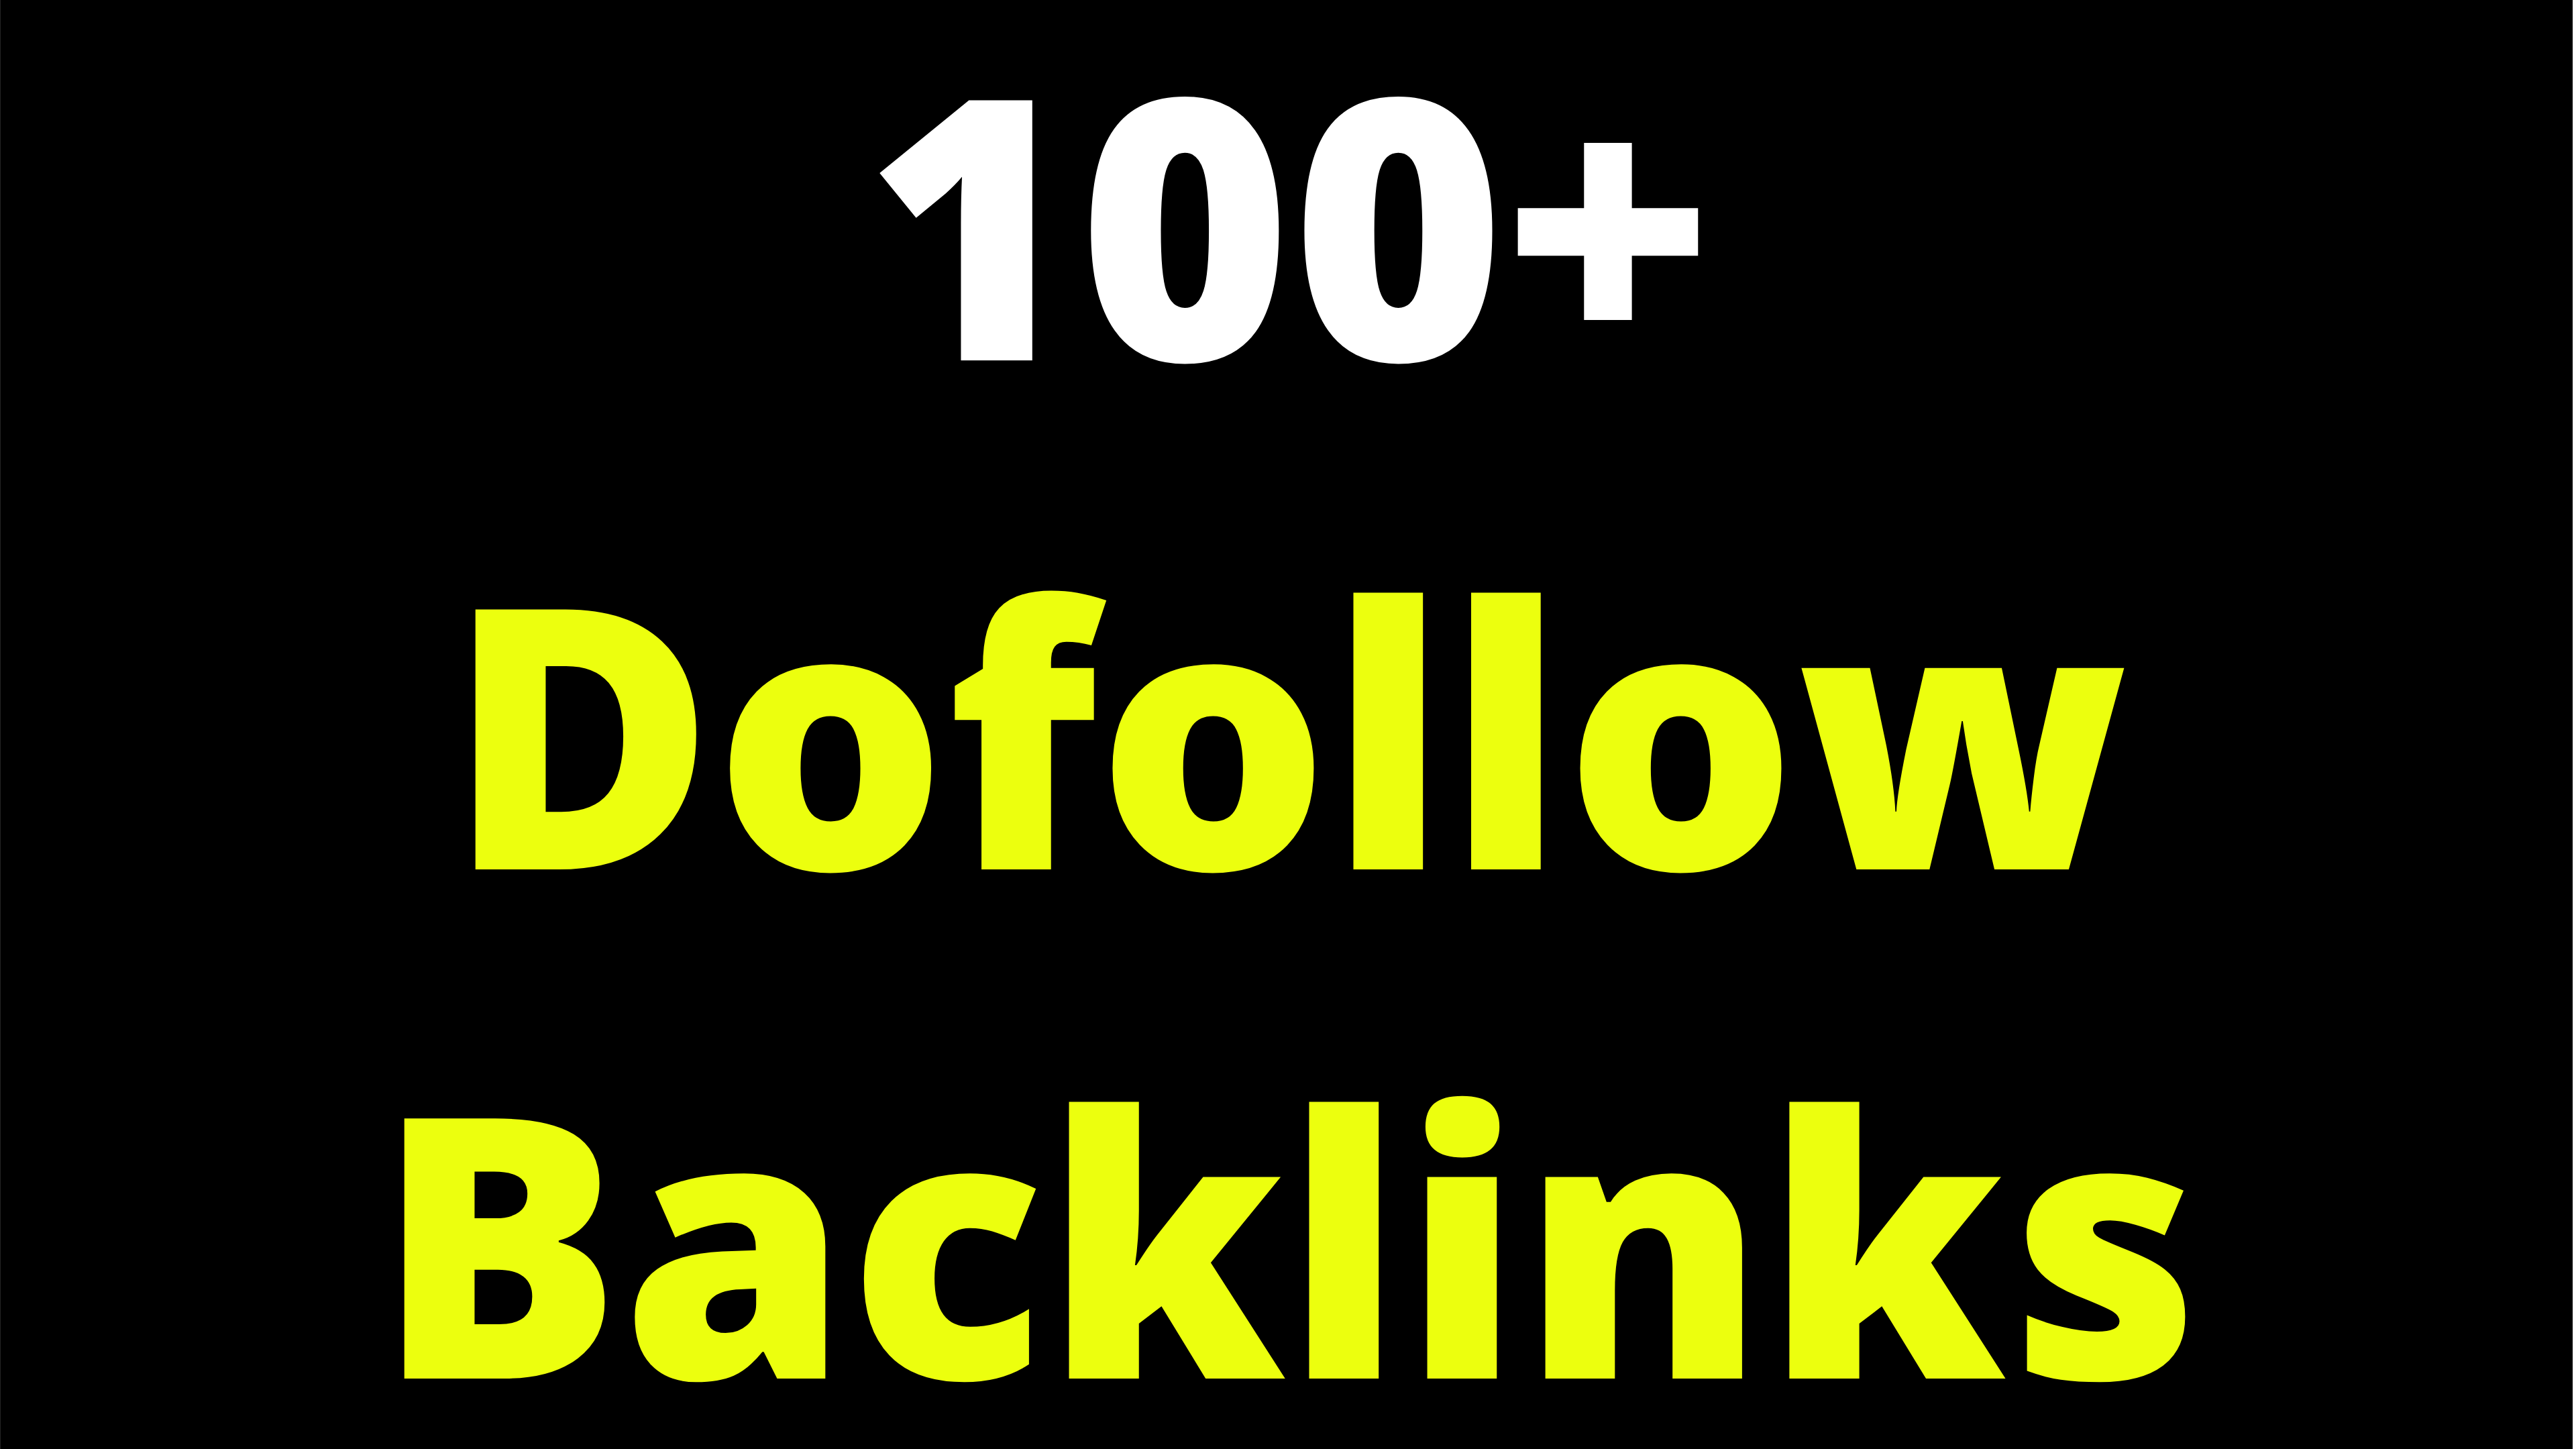 Dofollow SEO Backlinks 100+ Rank Your Site In Google Easily